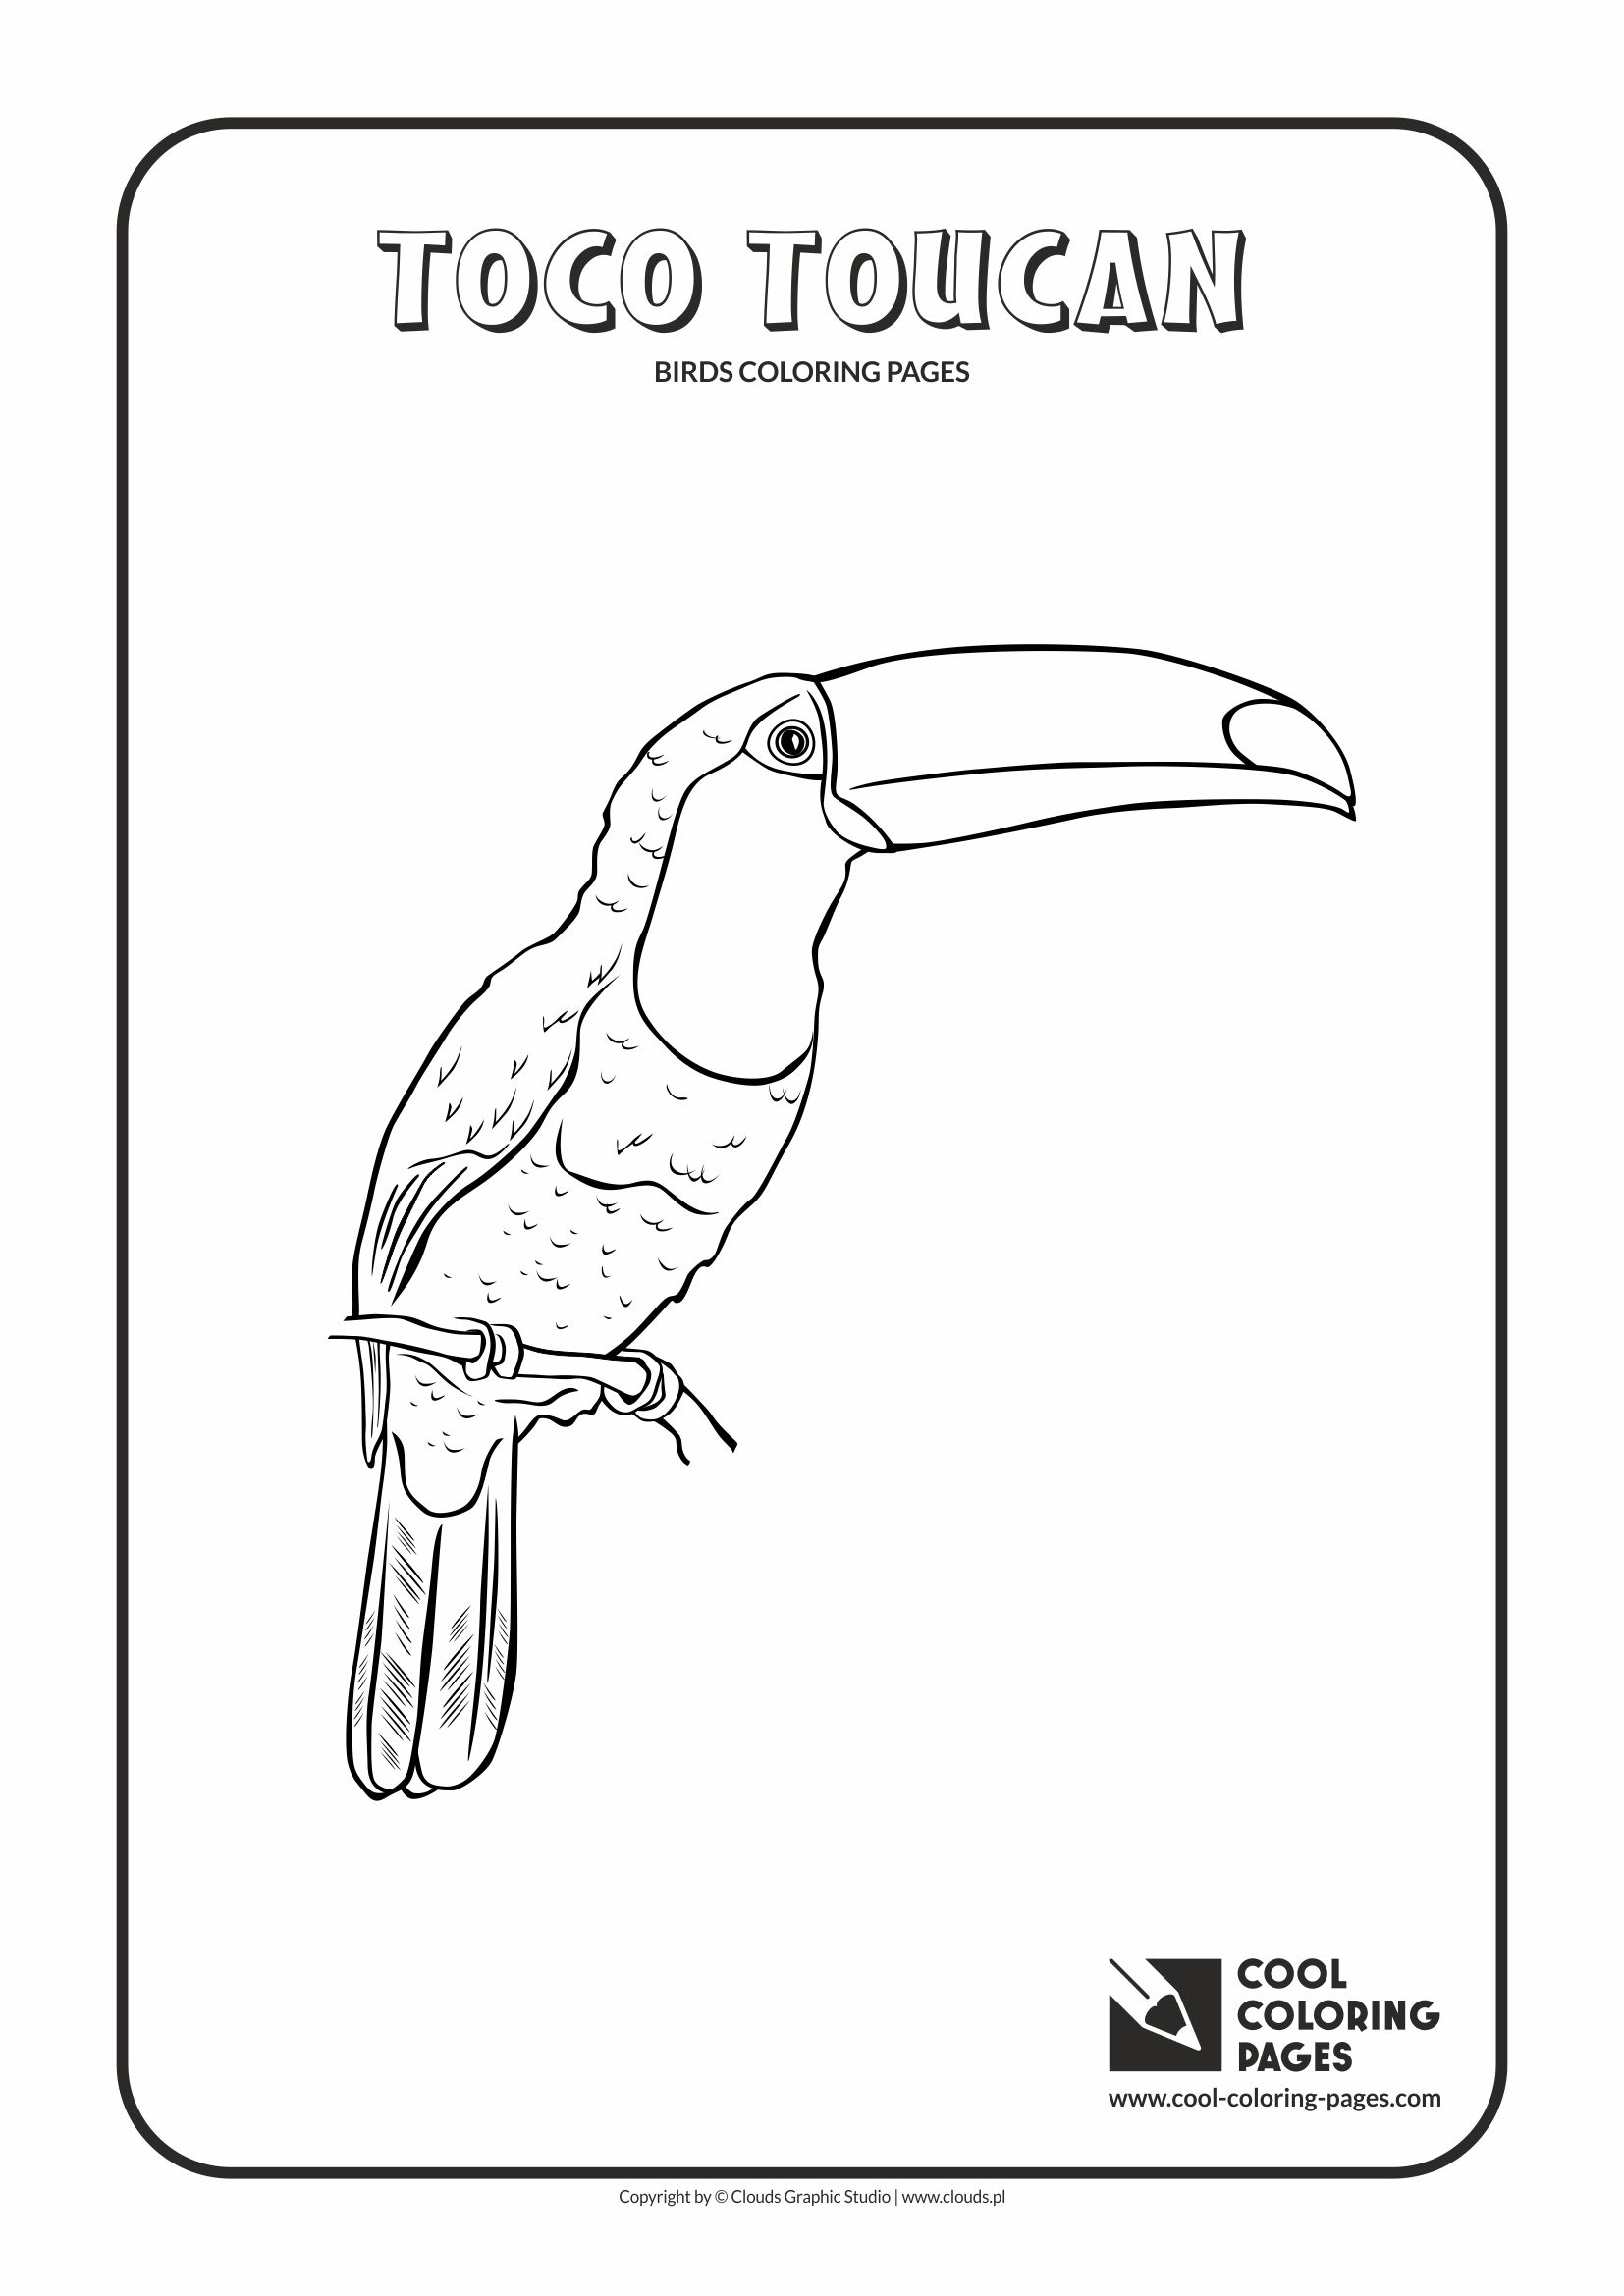 Cool Coloring Pages - Animals / Toco toucan / Coloring page with toco toucan